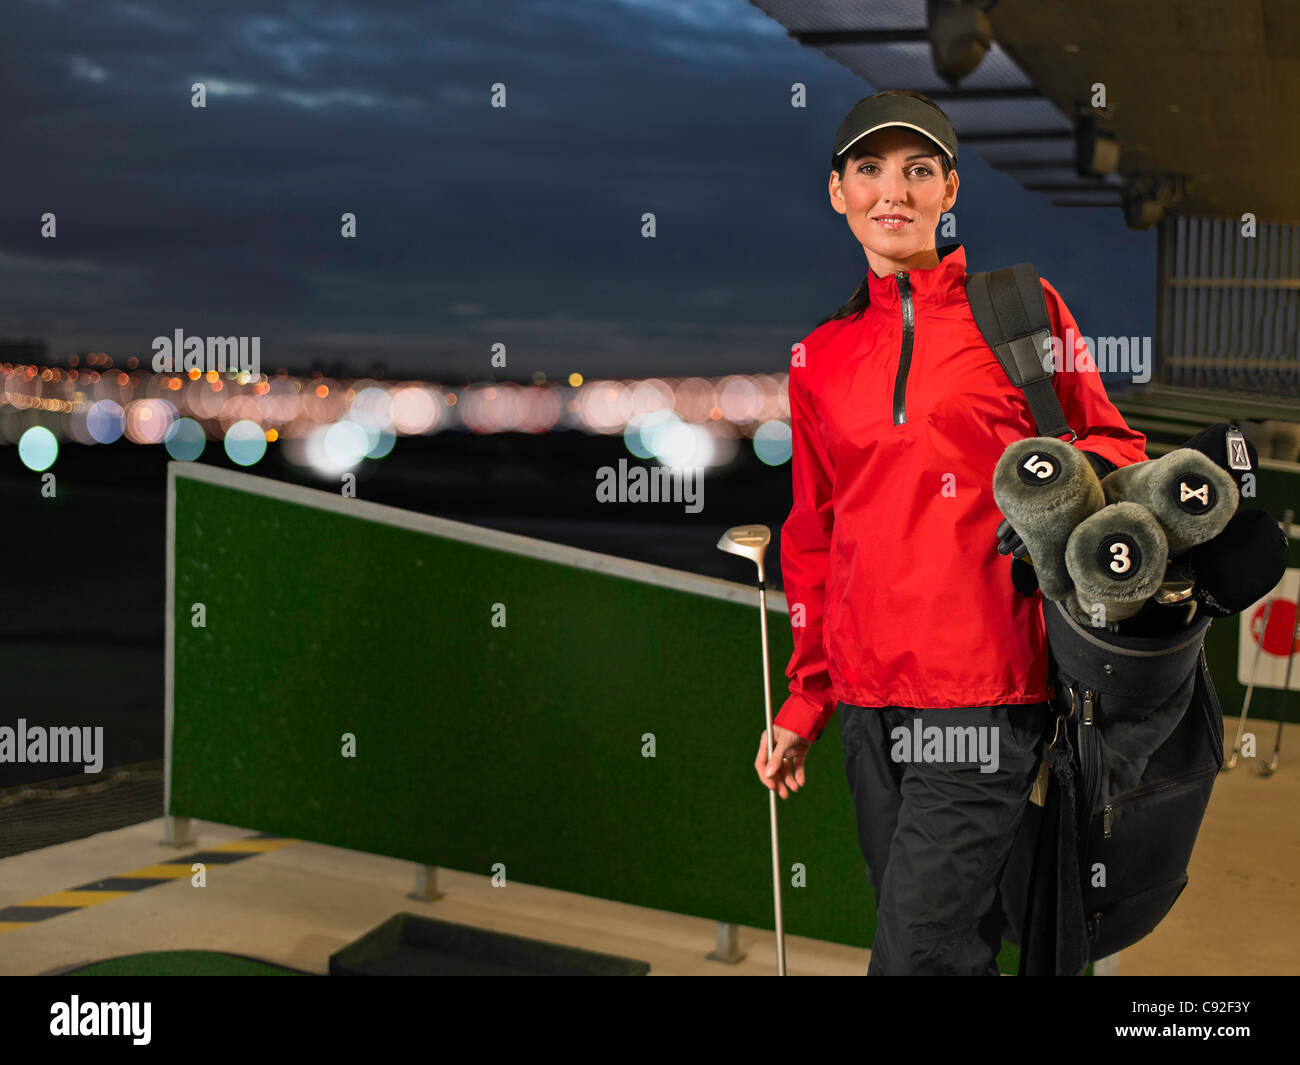 Woman with golf clubs at driving range - Stock Image